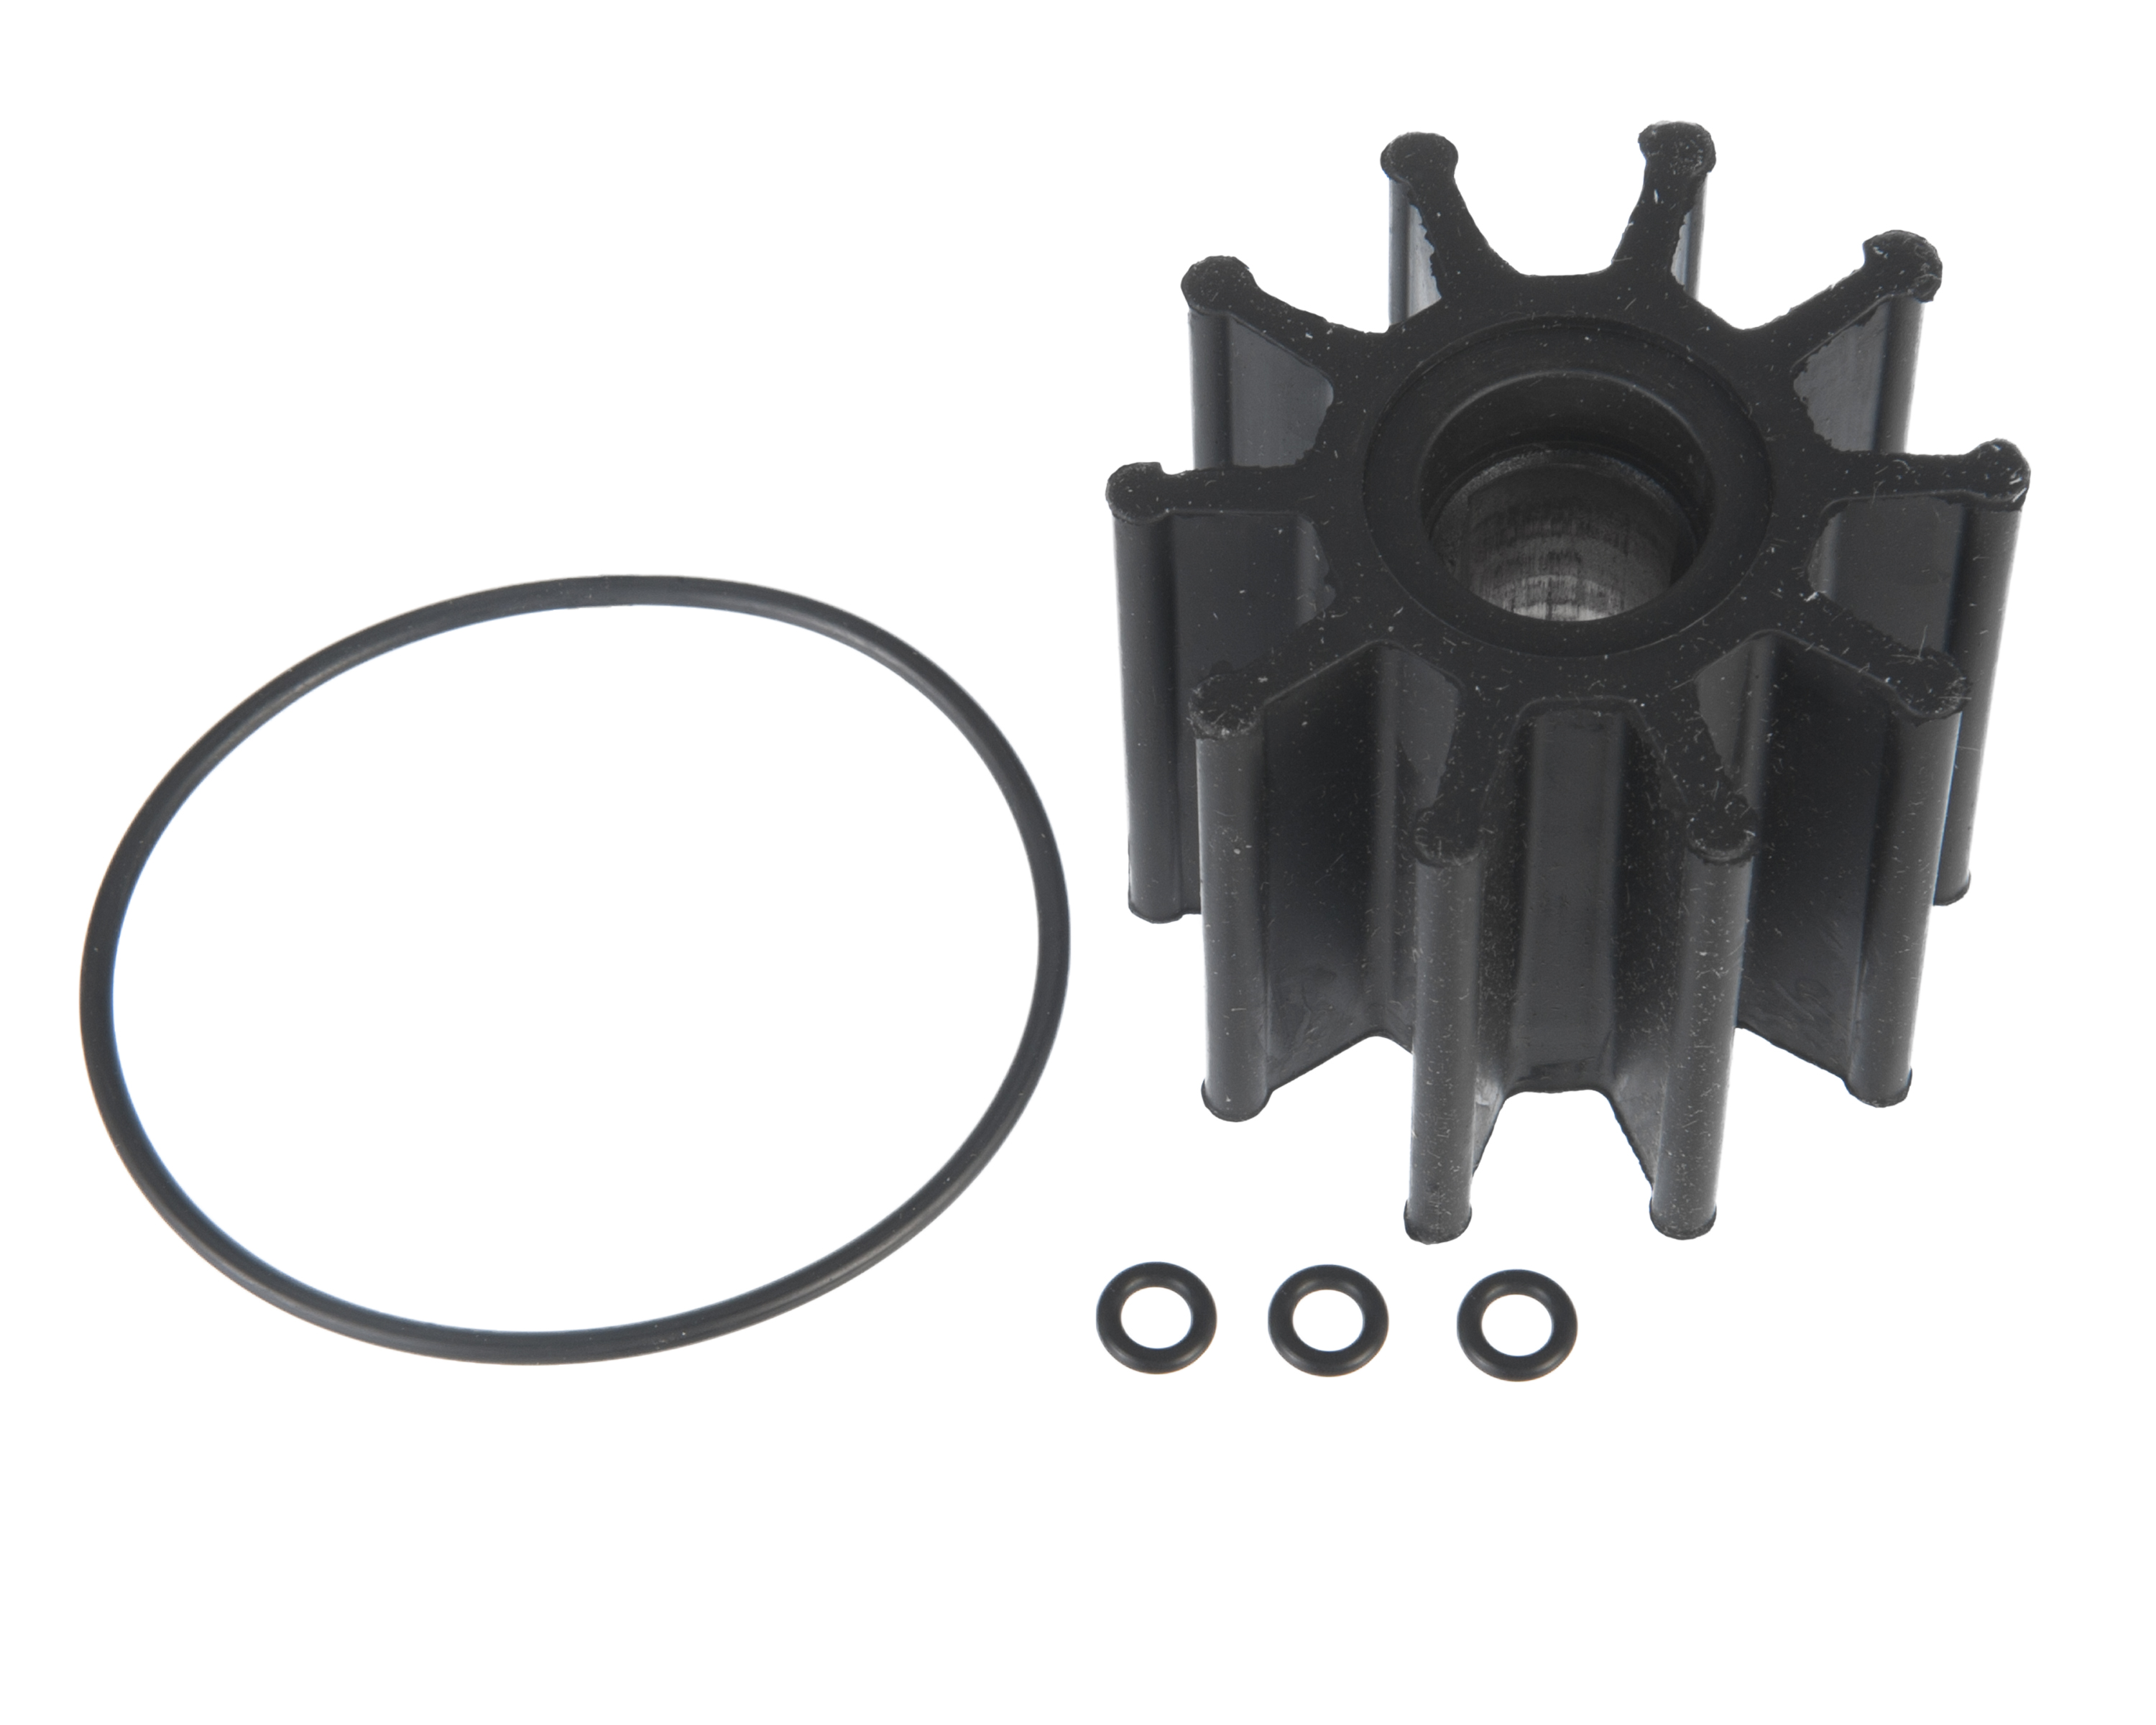 Impeller Kit, Raw Water Pump, 5.7L, 6.0L, 8.1L for Serp. Belt Pump